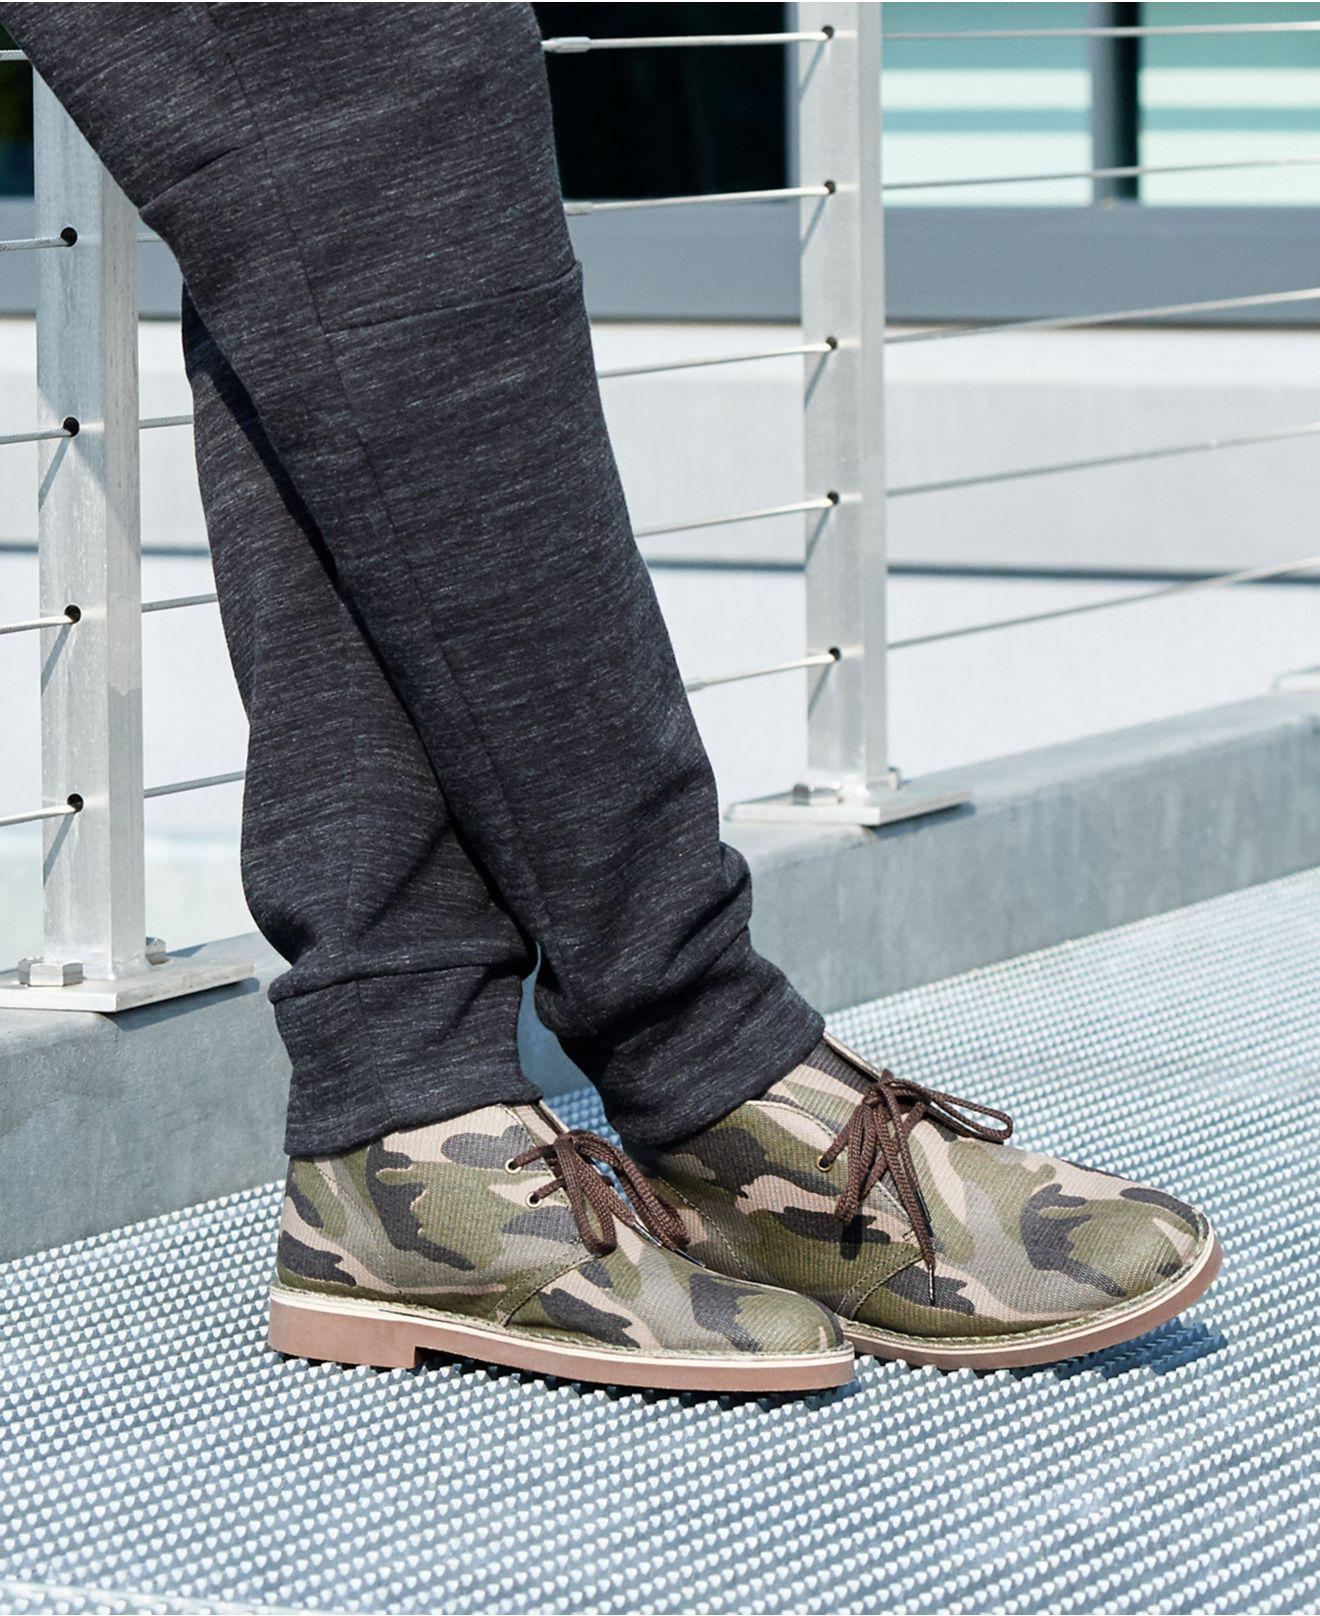 Clarks Multicolor Limited Edition Camo Bushacre, Created For Macy's for men